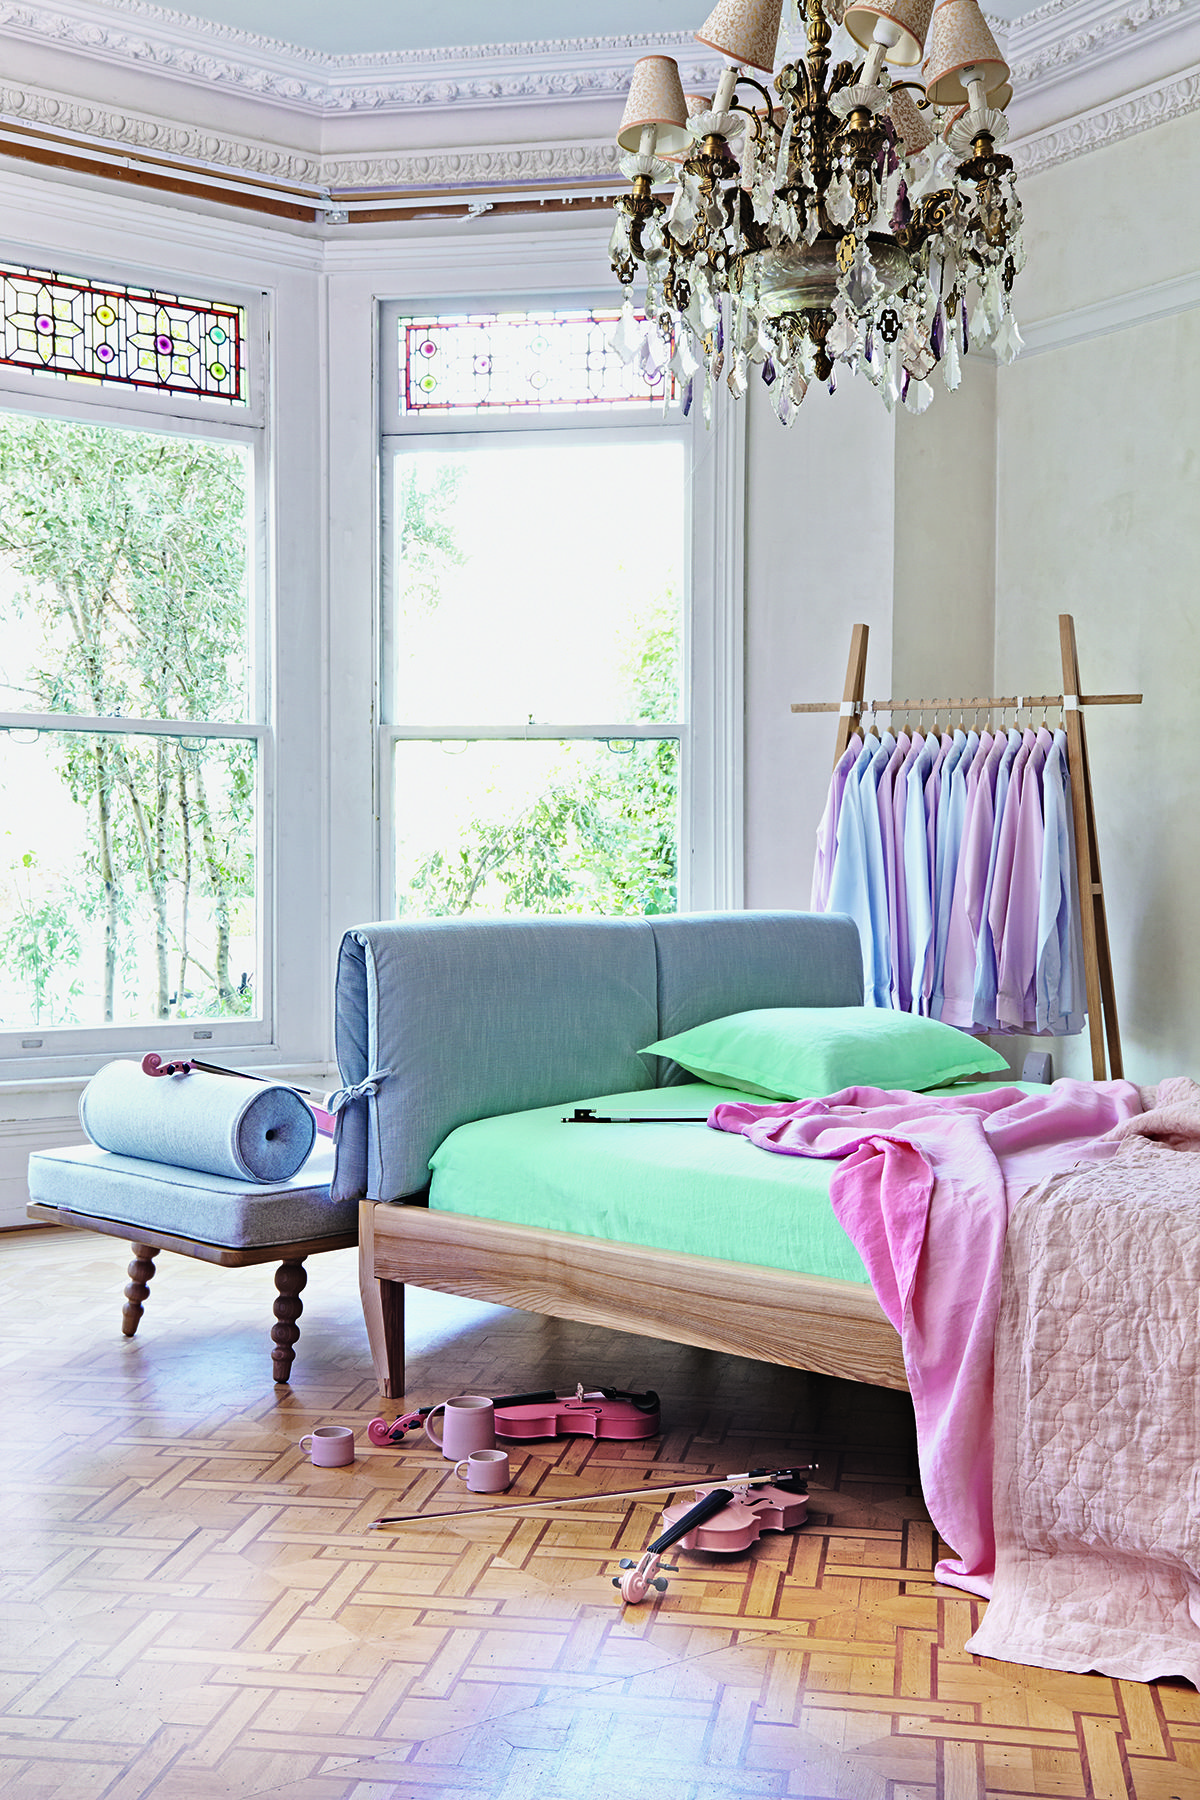 Pastel Bedroom Ideas Pastel Decorating Pastel Room Decor Ideas And Inspiration